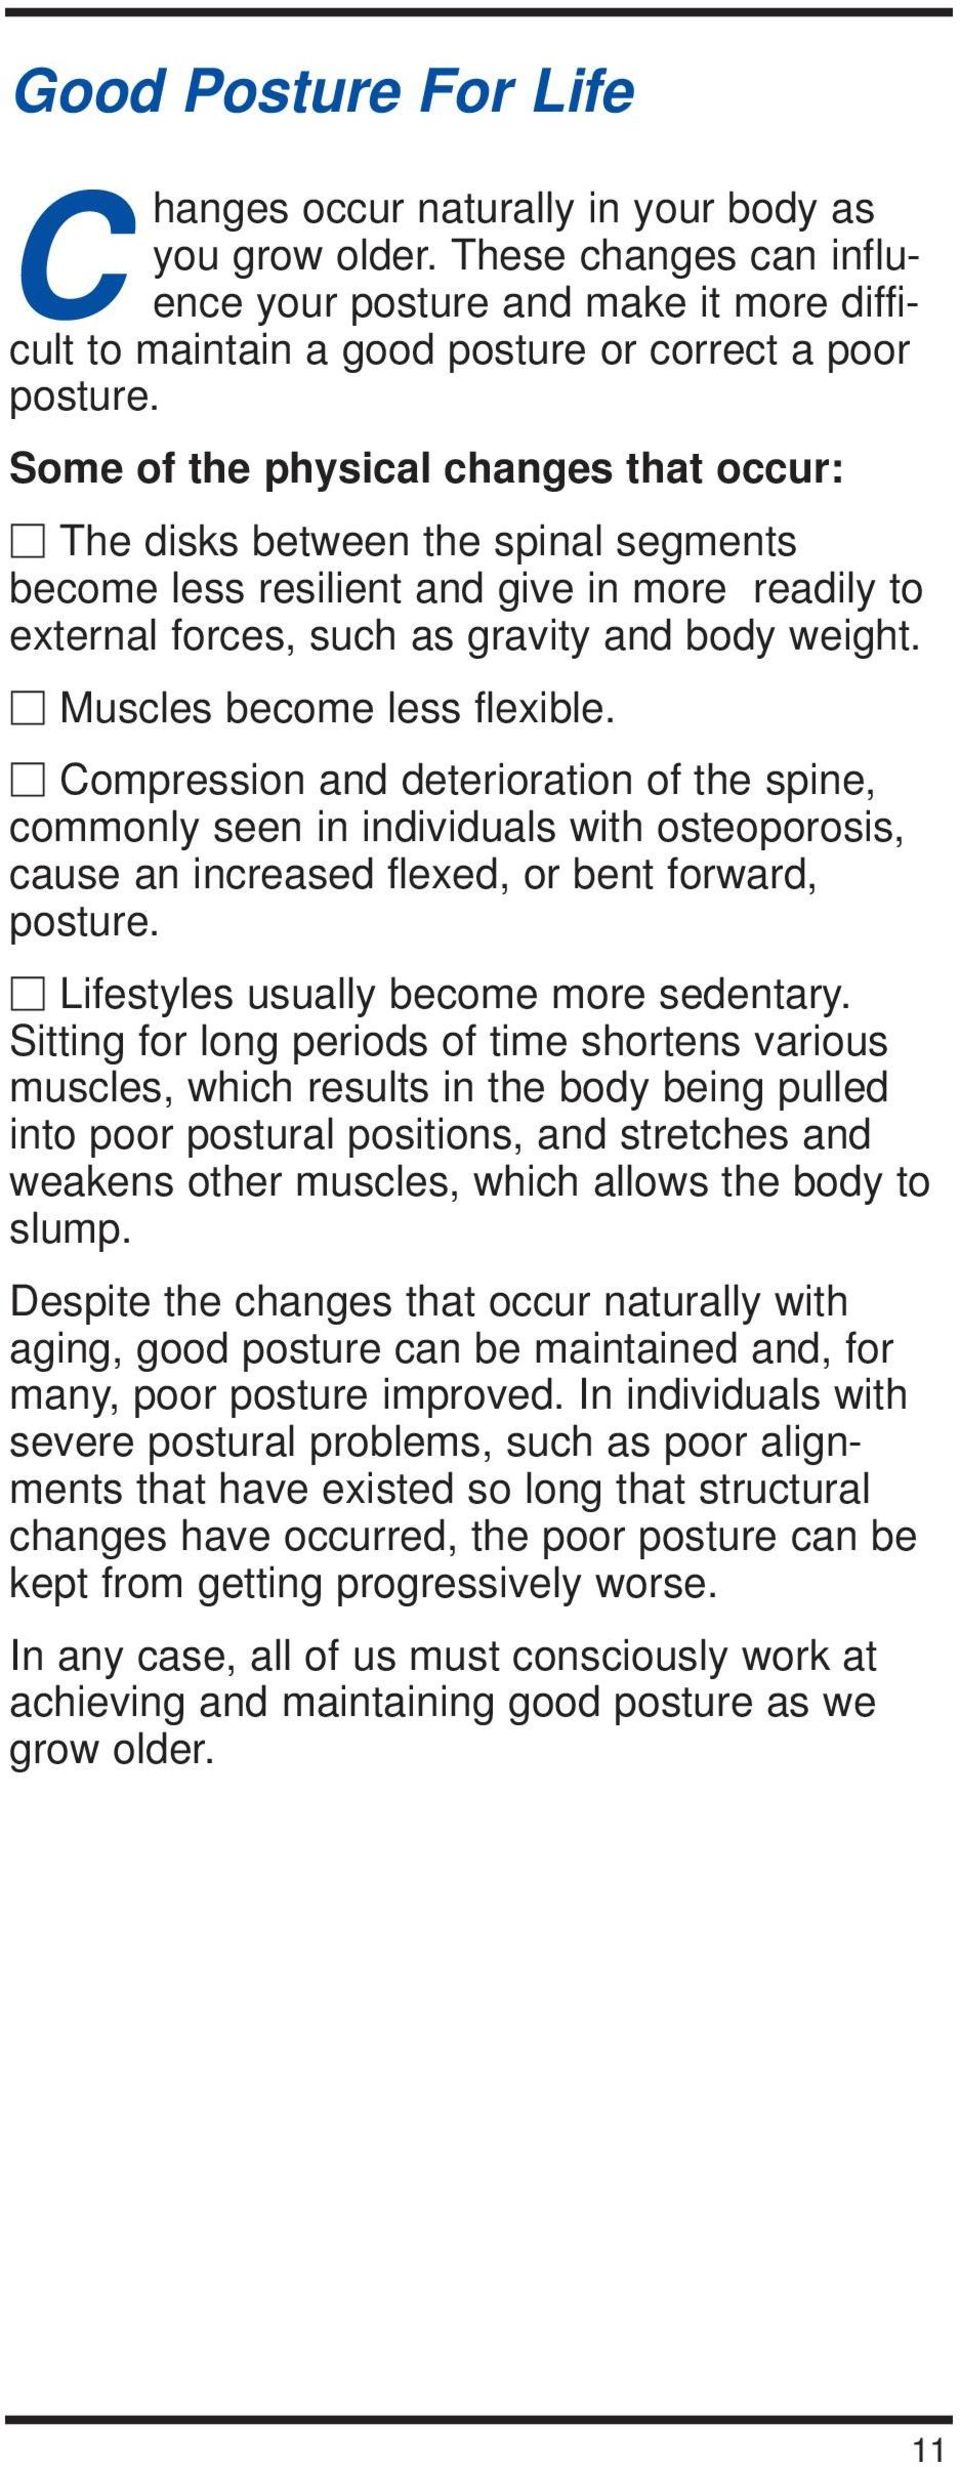 Muscles become less flexible. Compression and deterioration of the spine, commonly seen in individuals with osteoporosis, cause an increased flexed, or bent forward, posture.